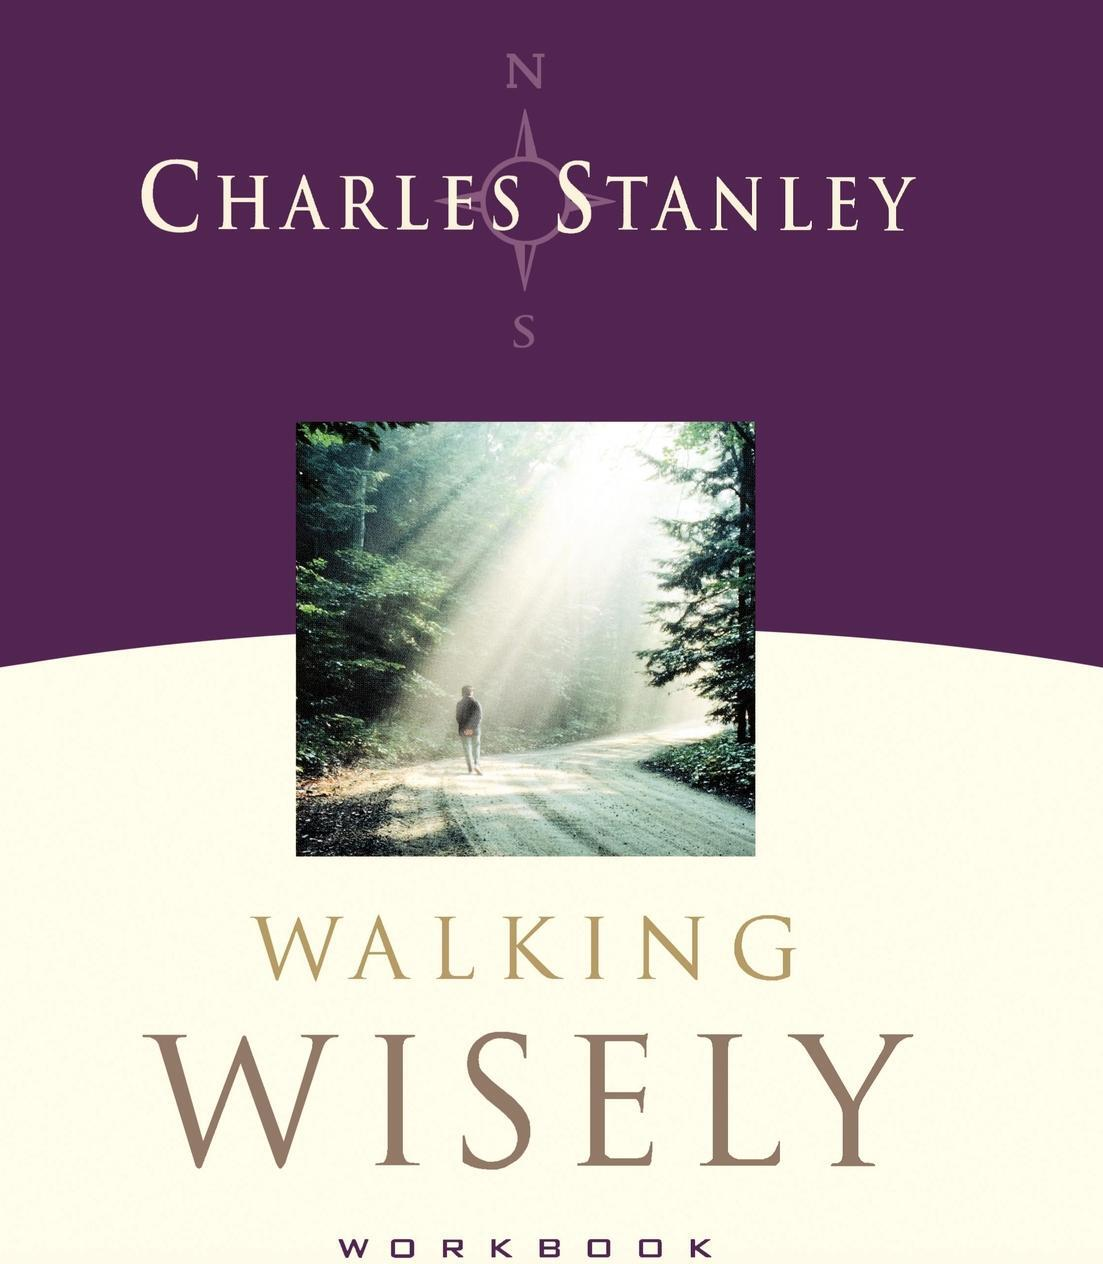 Walking Wisely. Real Guidance for Life's Journey